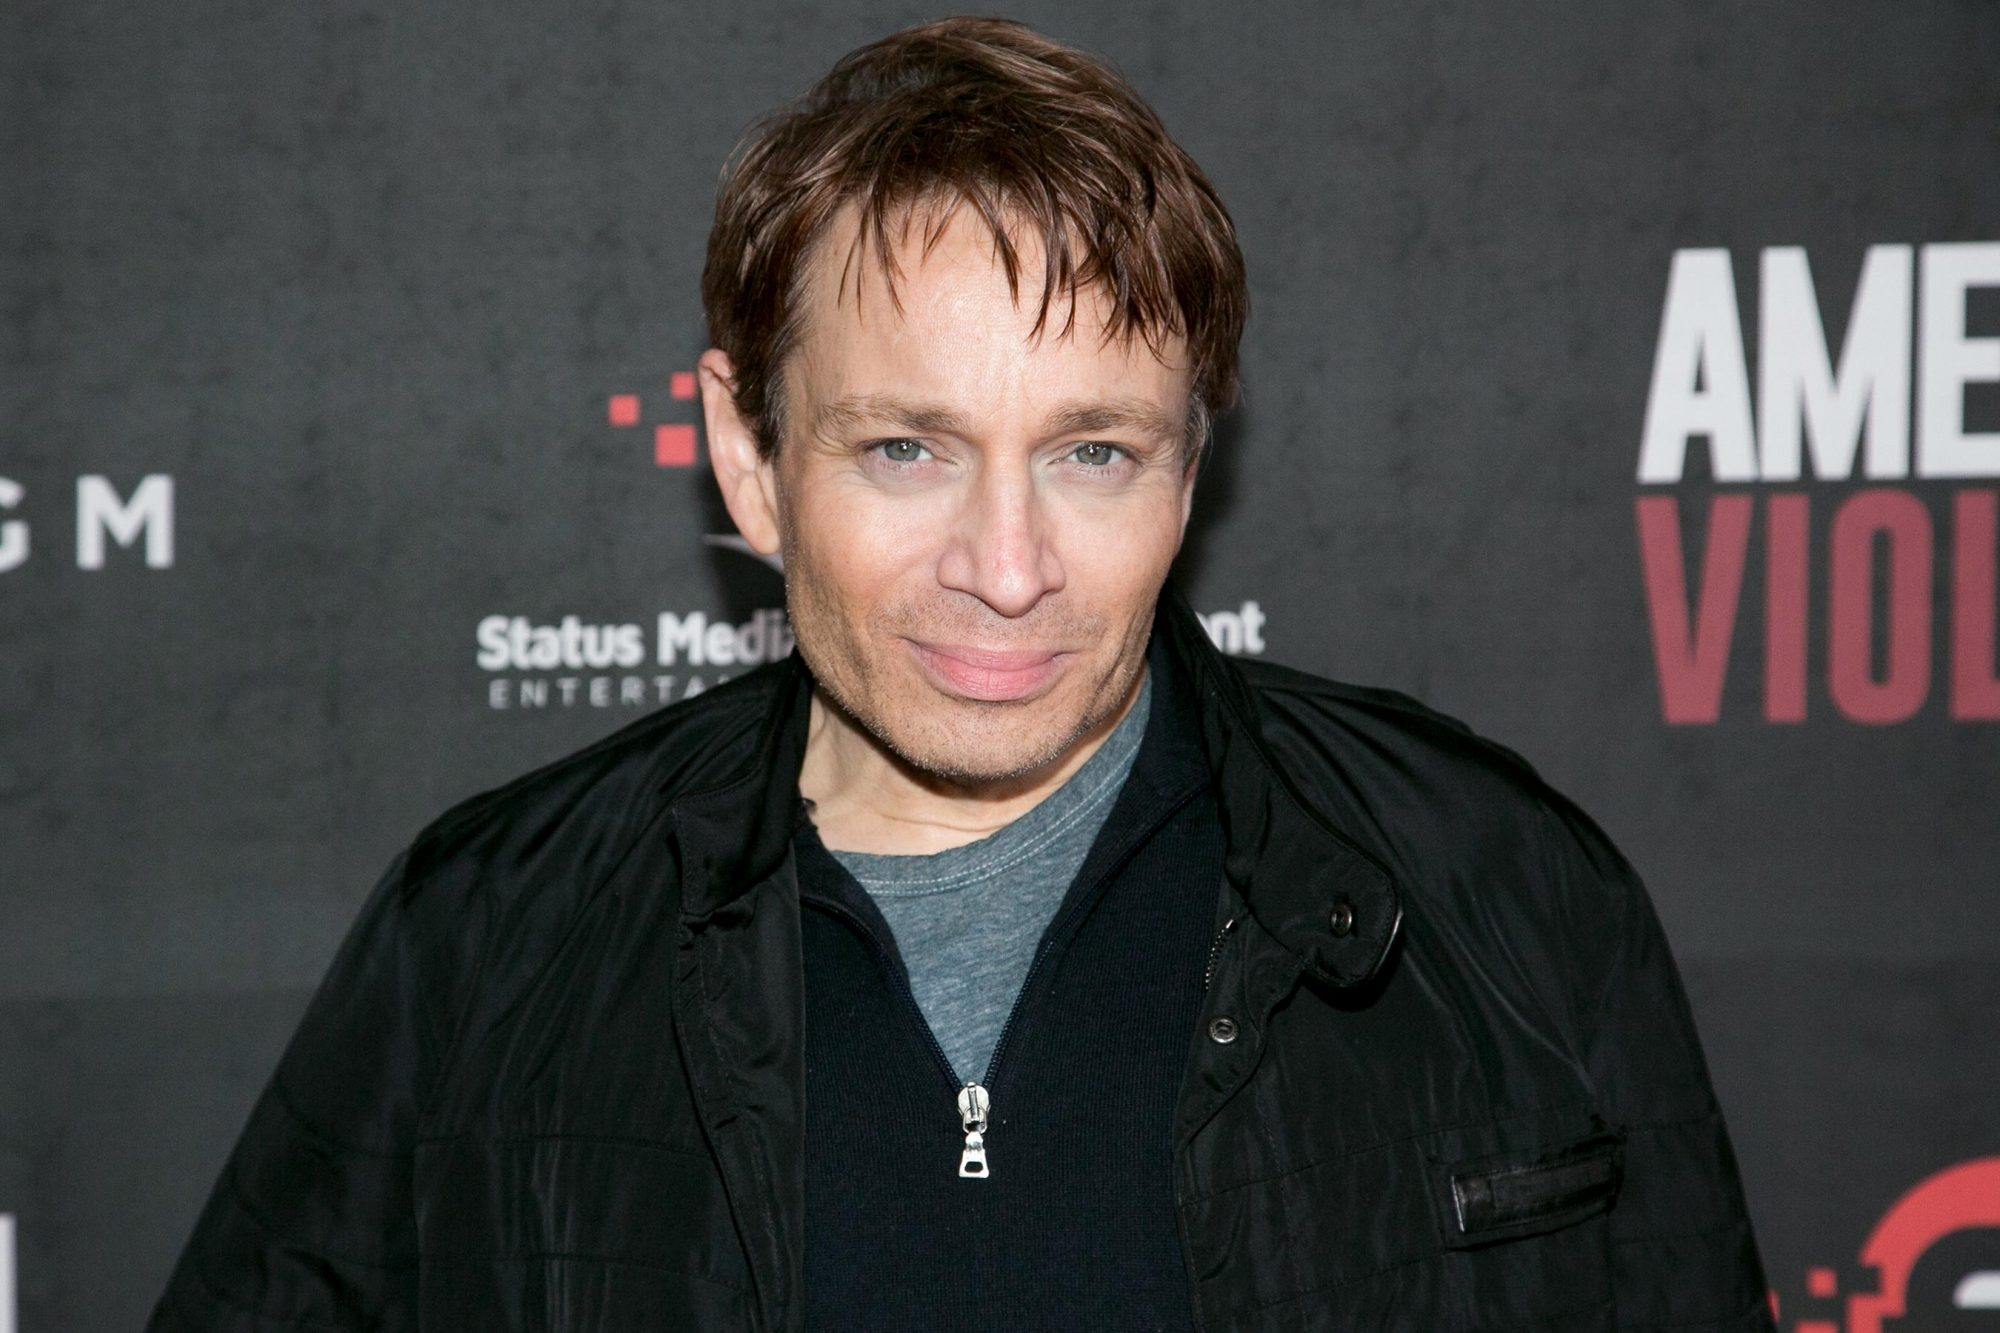 """HOLLYWOOD, CA - JANUARY 25: Chris Kattan arrives for the premiere of BondIt's """"American Violence"""" at the Egyptian Theatre on January 25, 2017 in Hollywood, California. (Photo by Gabriel Olsen/WireImage)"""